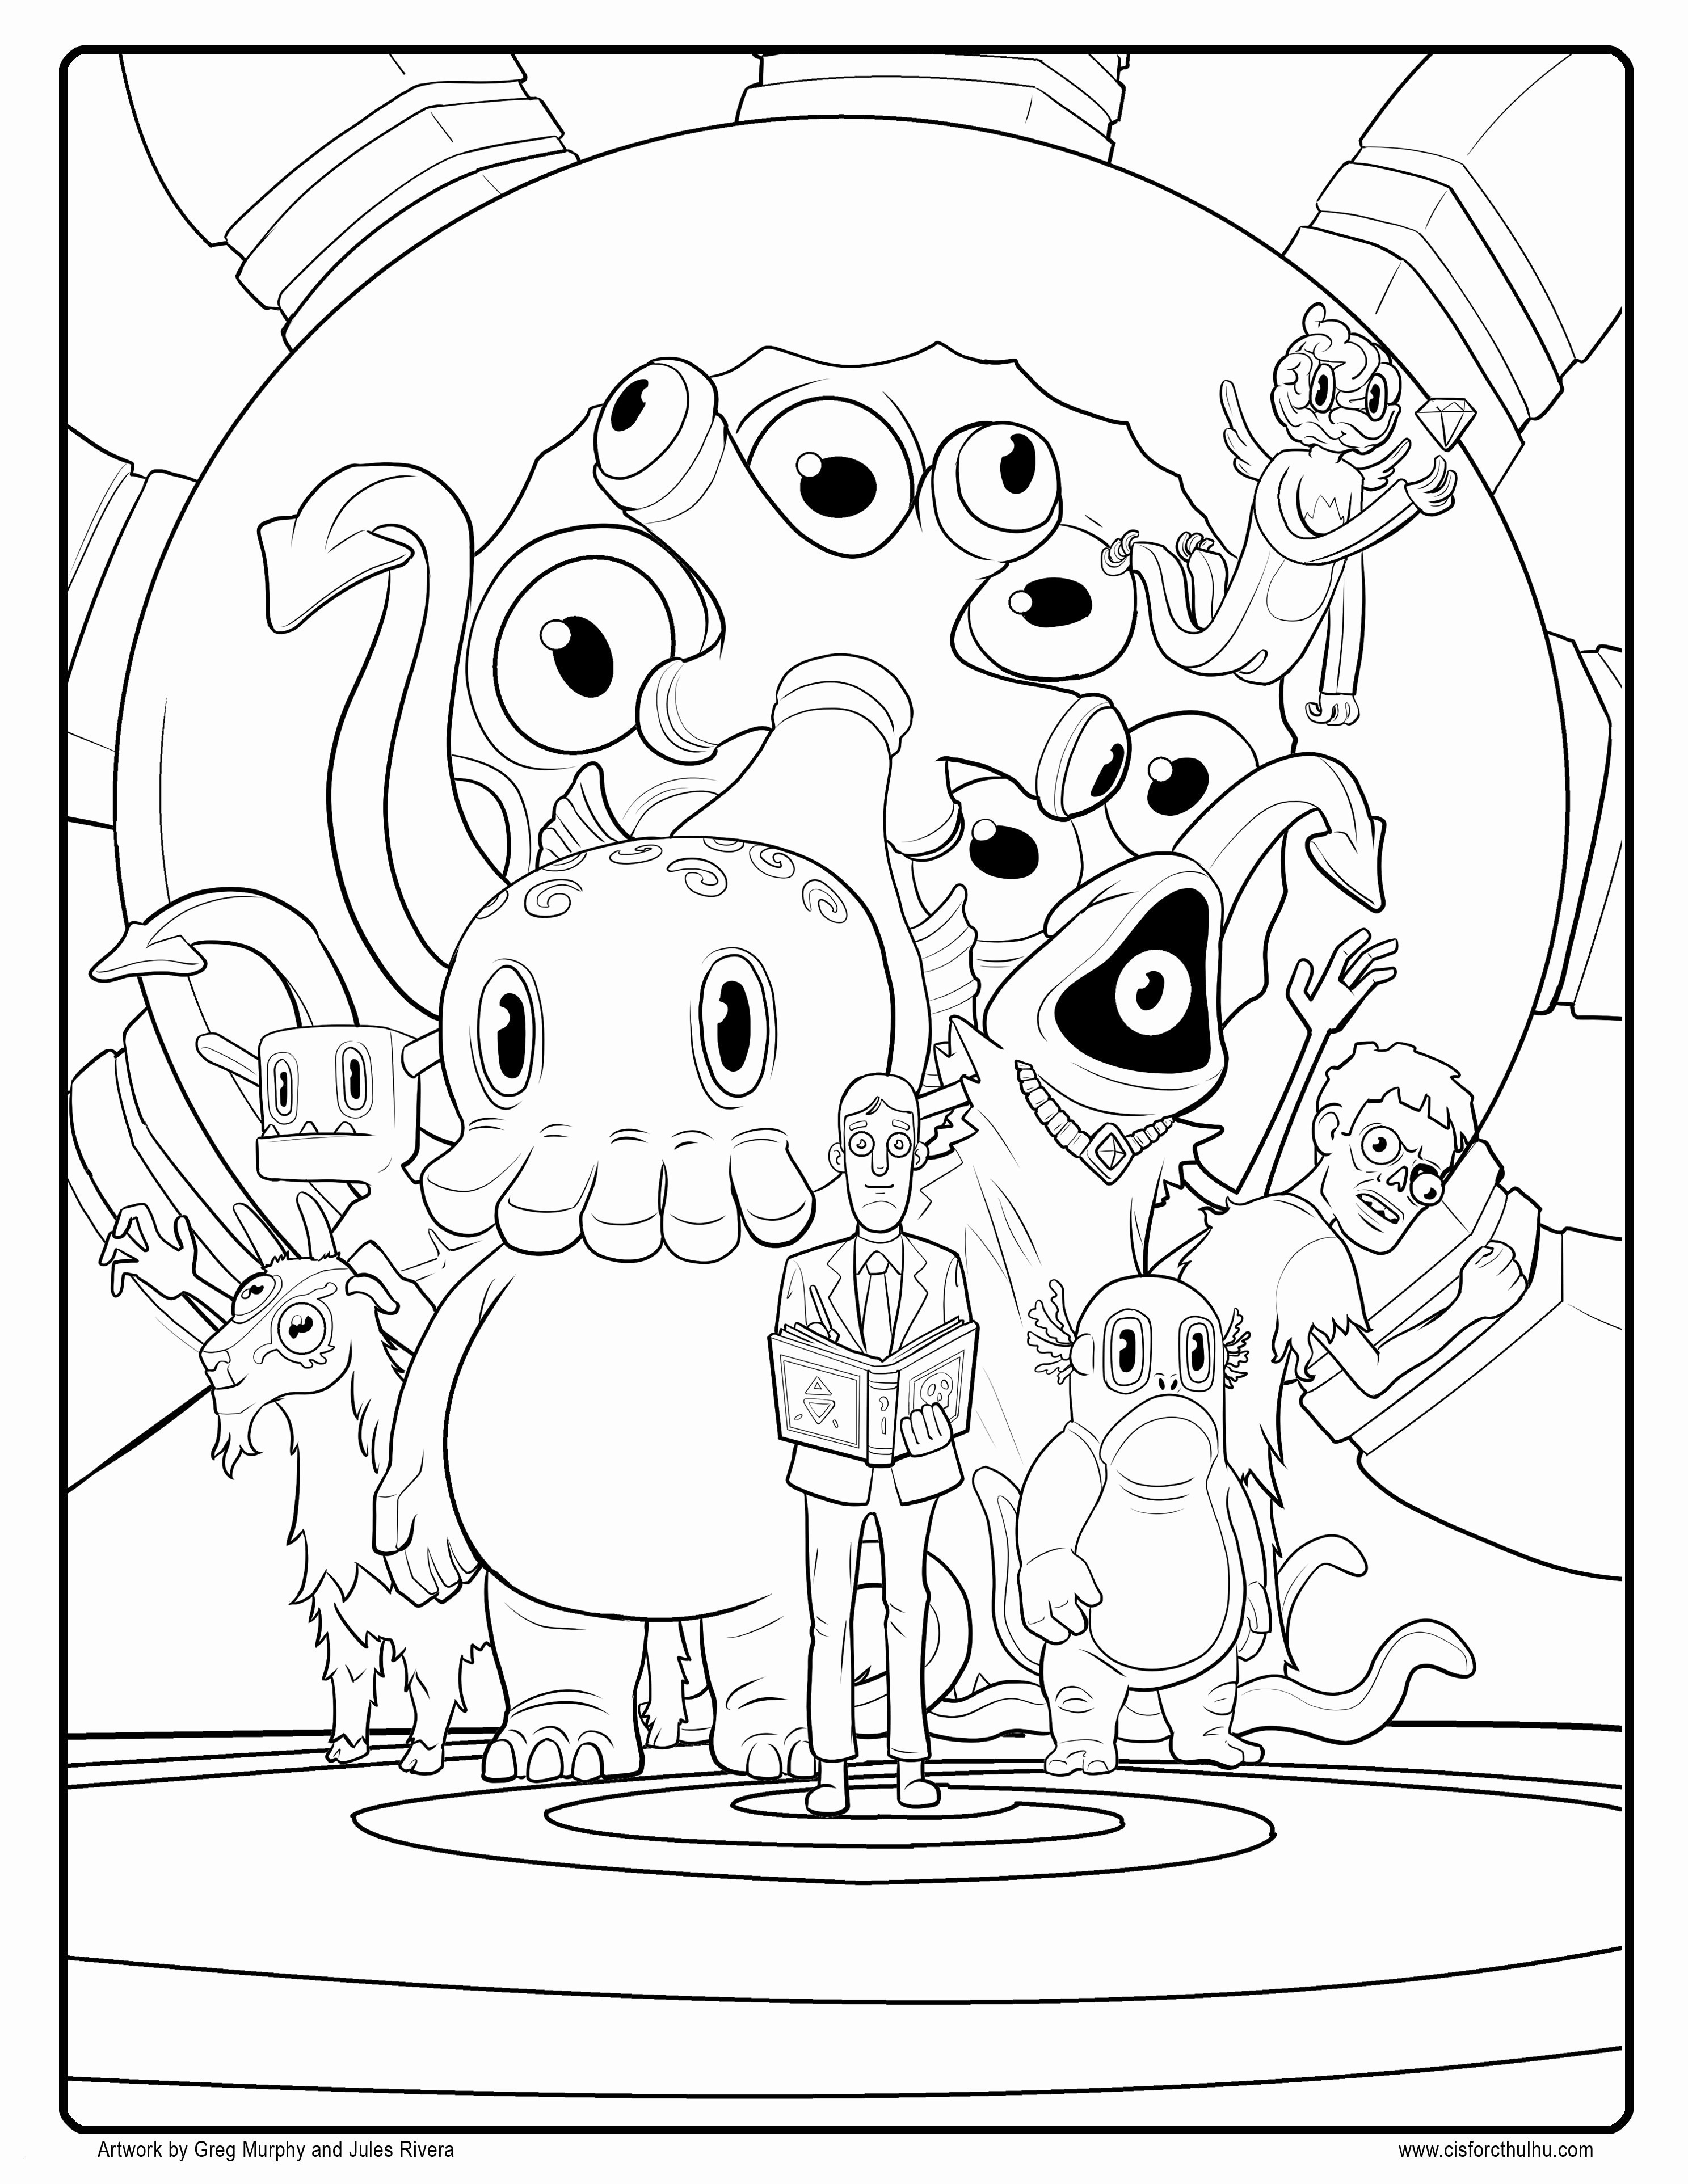 20 Coloring Pages Printing Gallery Coloring Sheets